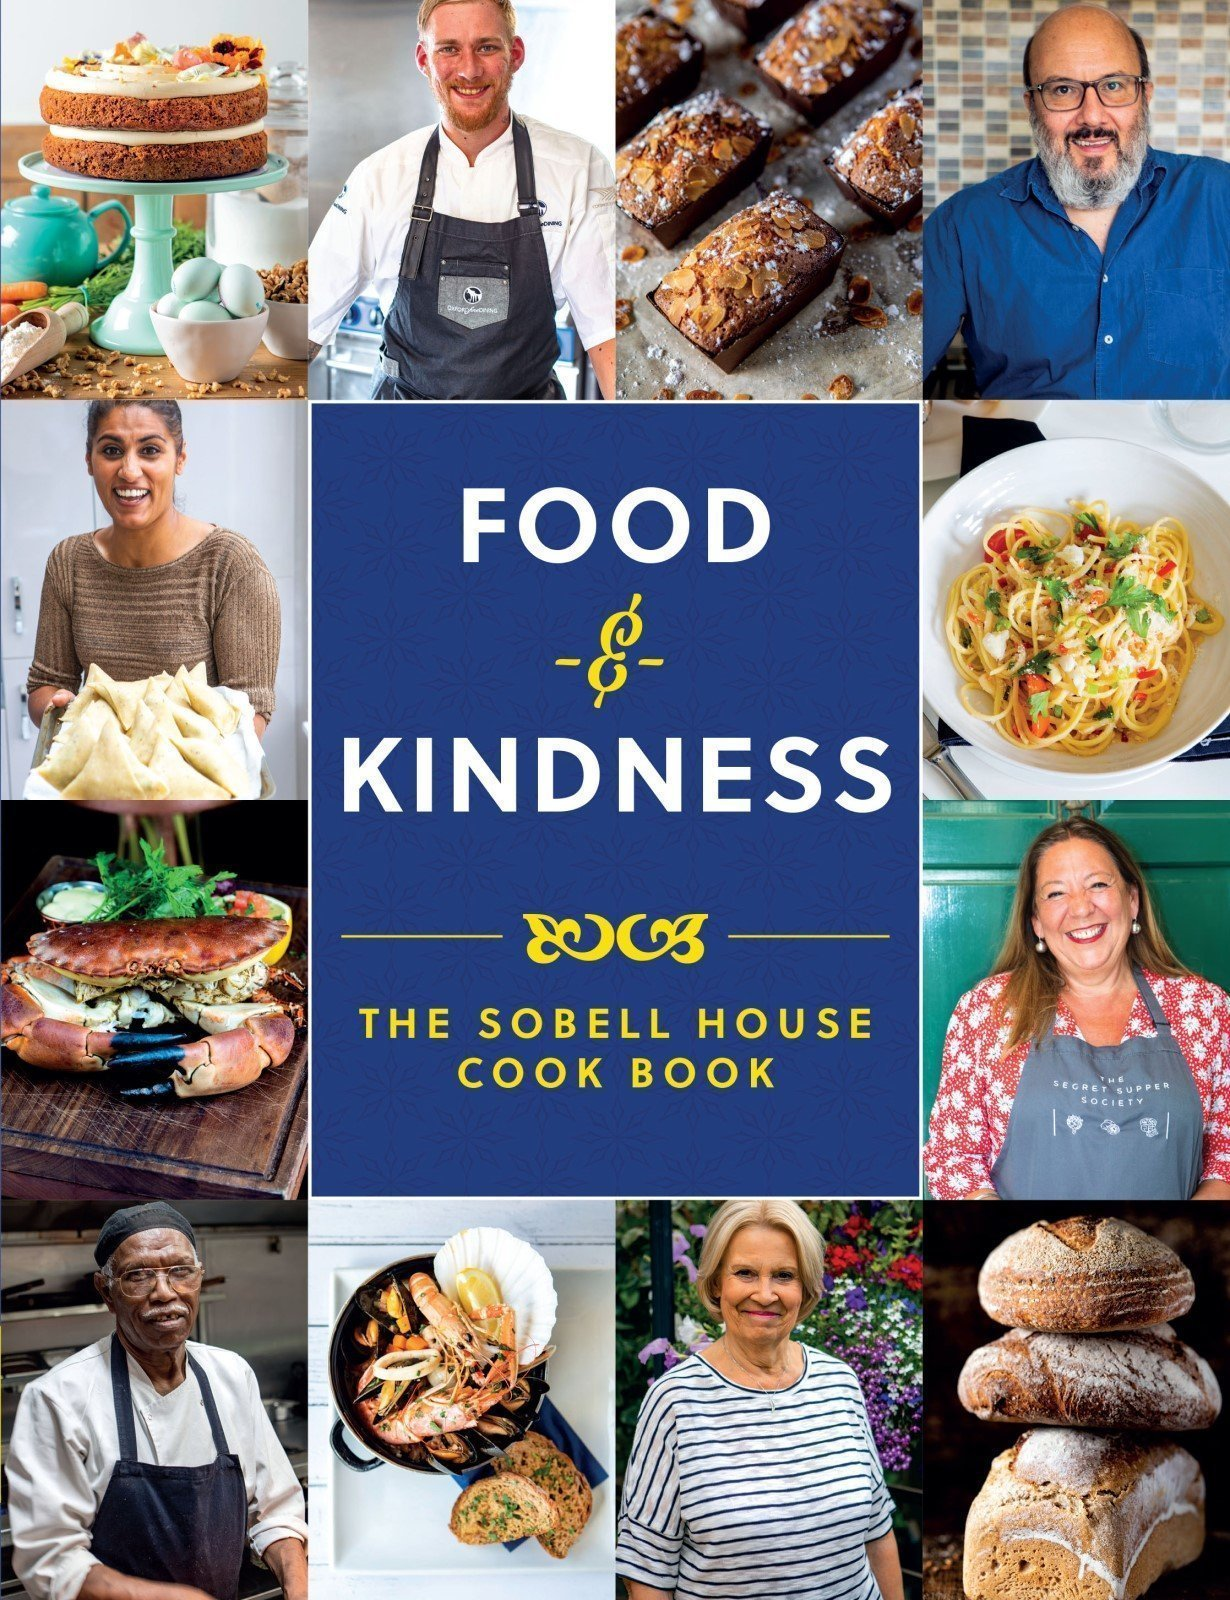 Food & Kindness: The Sobell House Cook Book